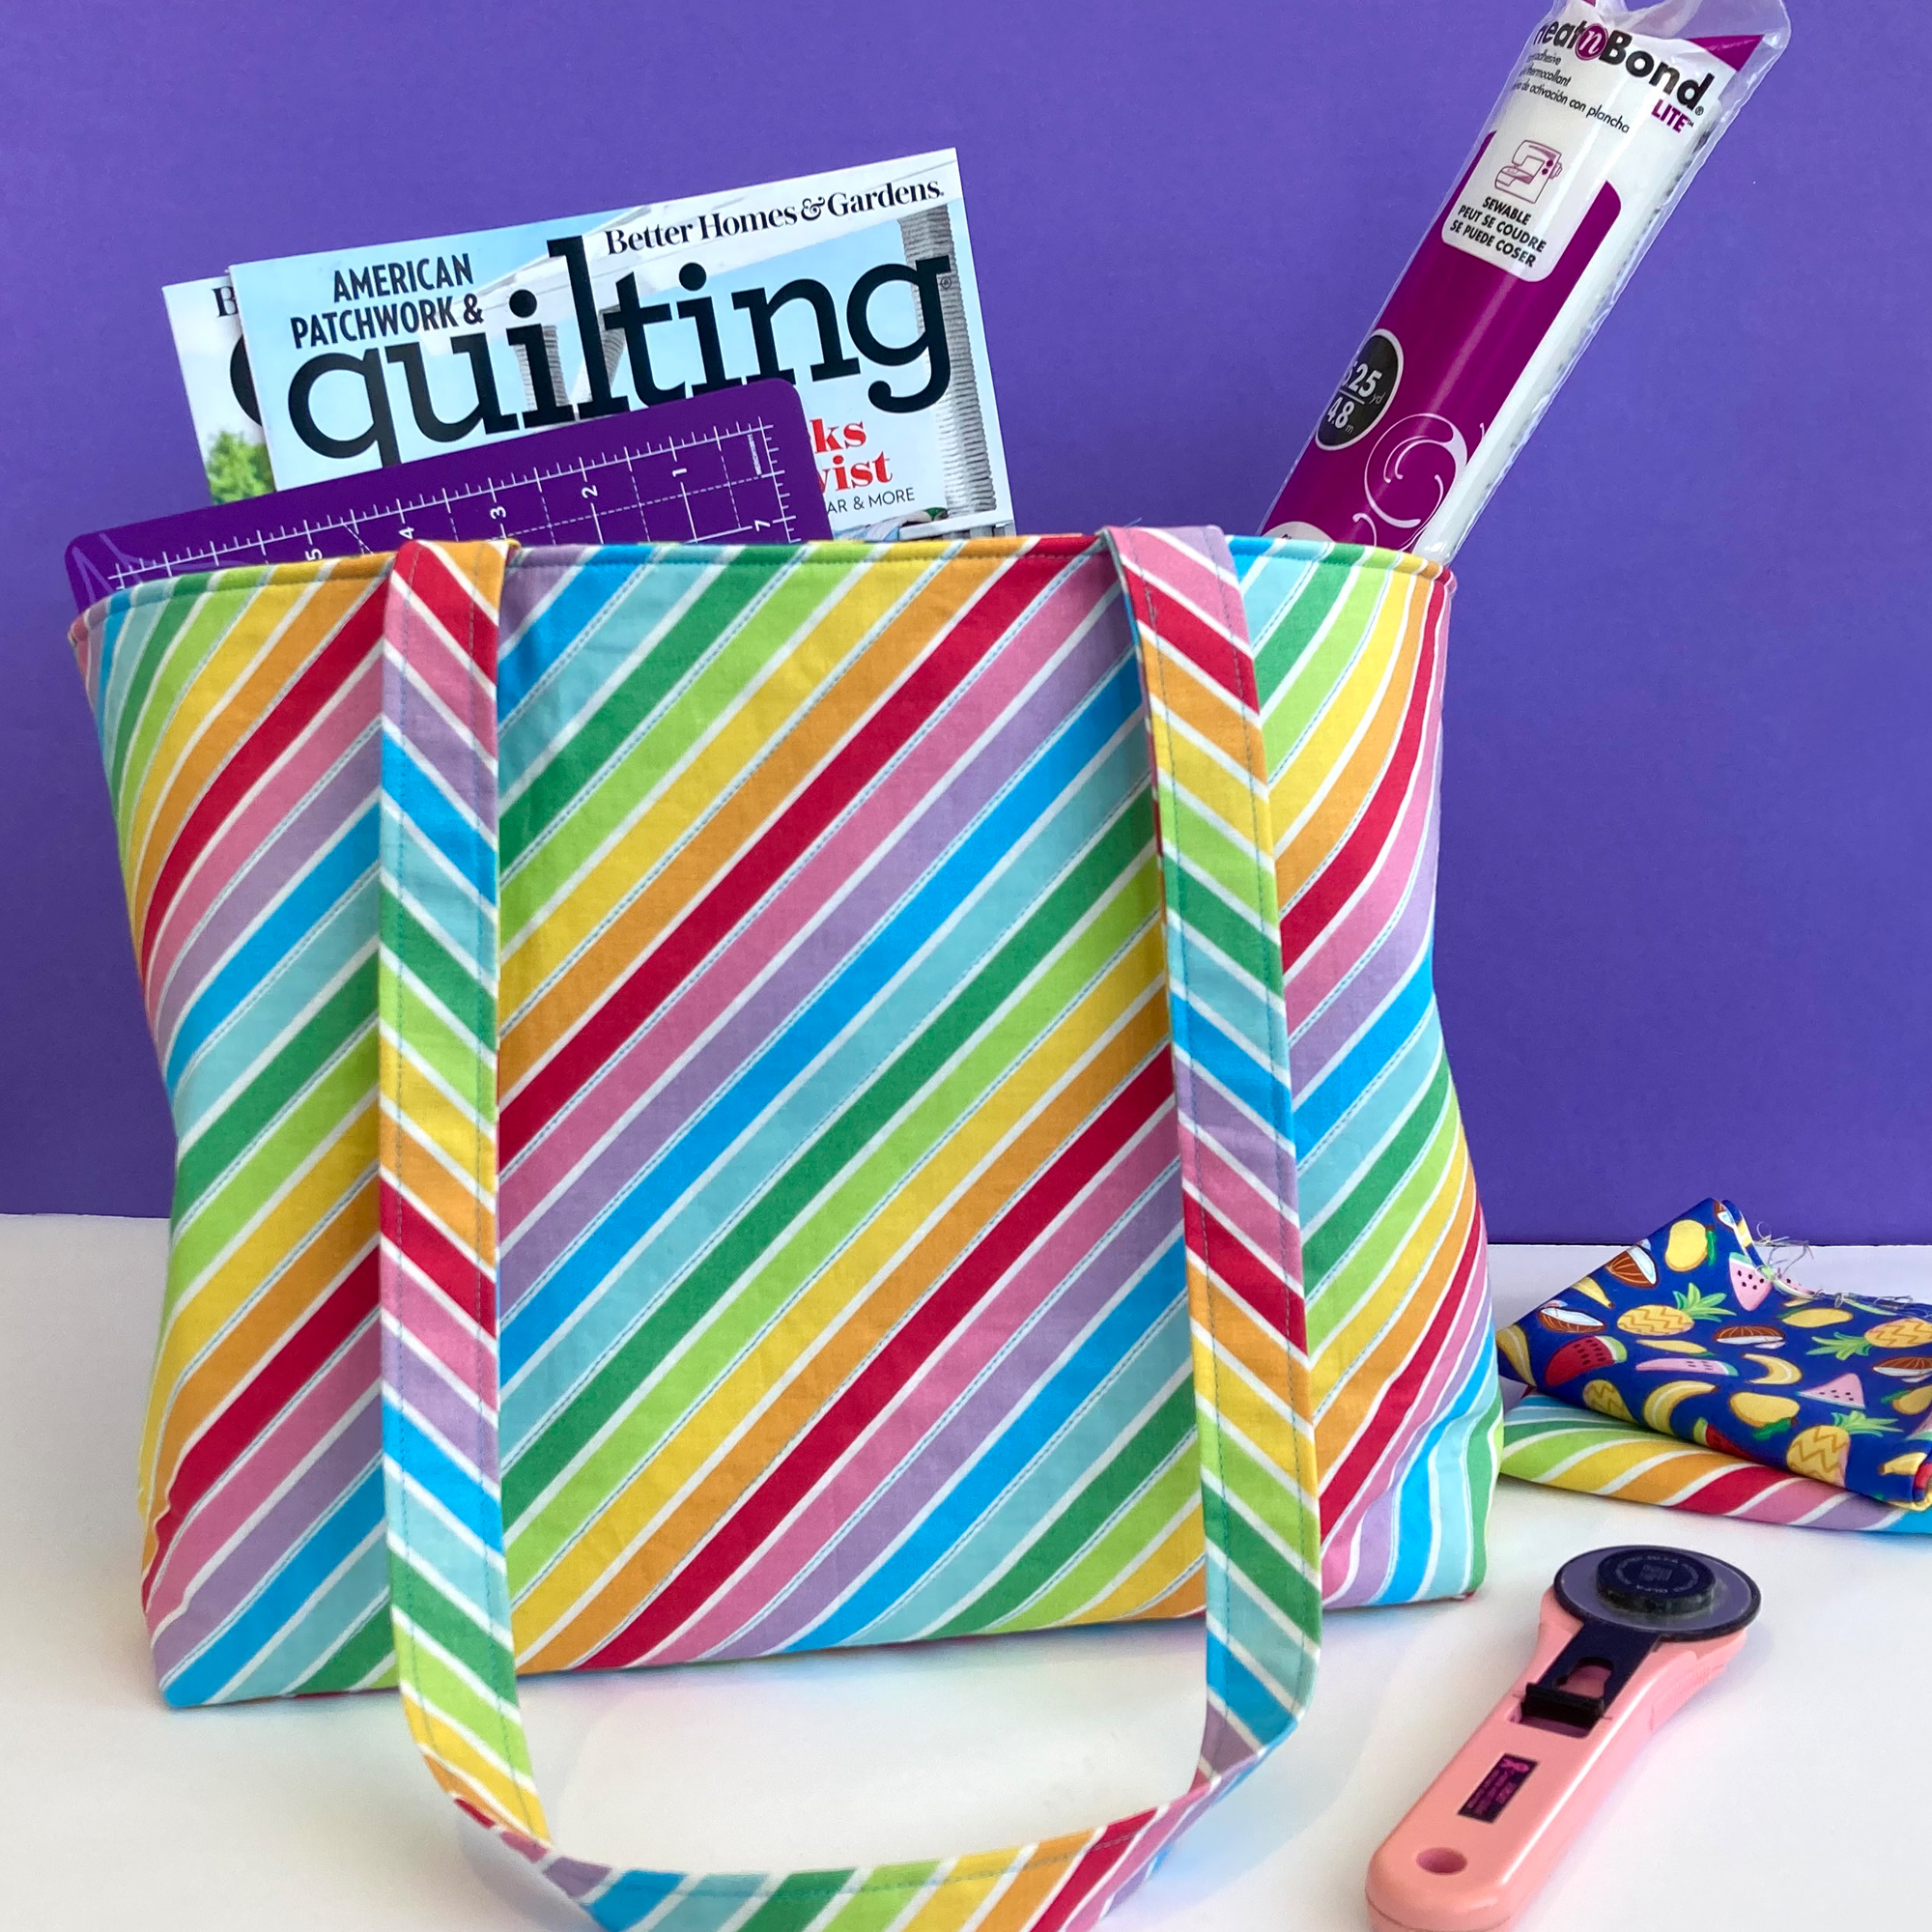 Rainbow Striped tote bag with quilting supplies